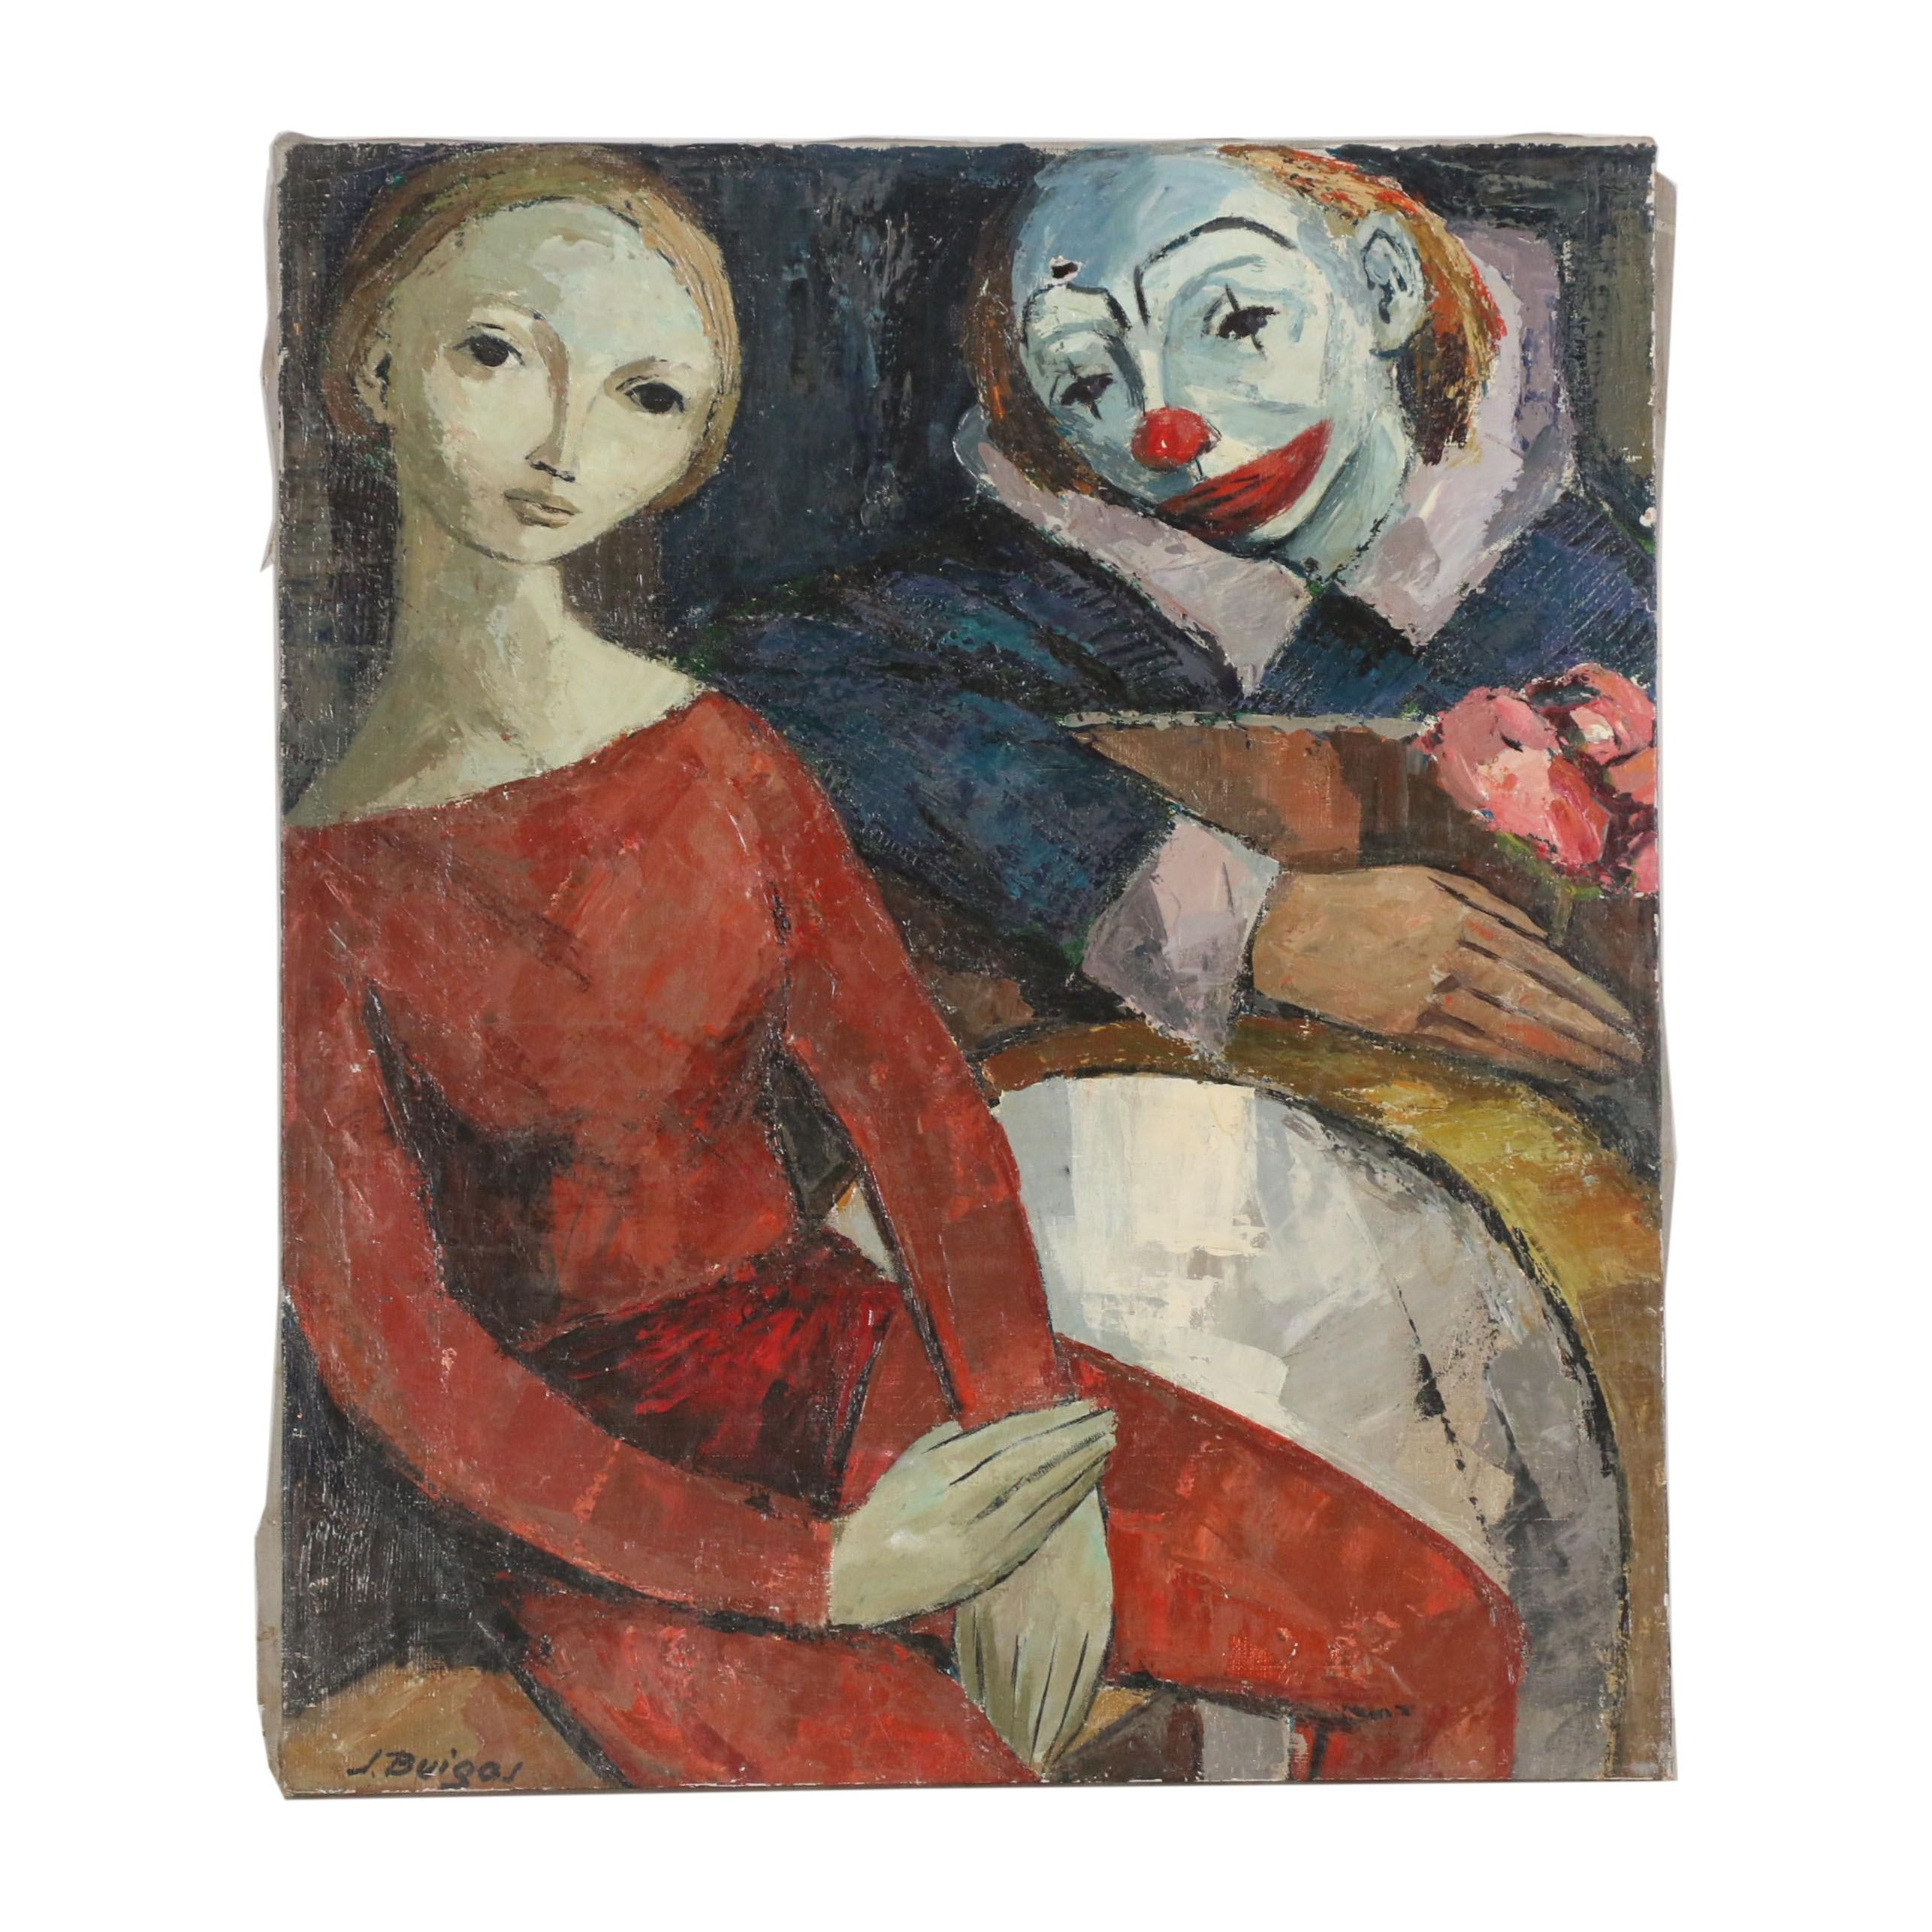 Jose Buigas Oil Painting of Woman and Clown